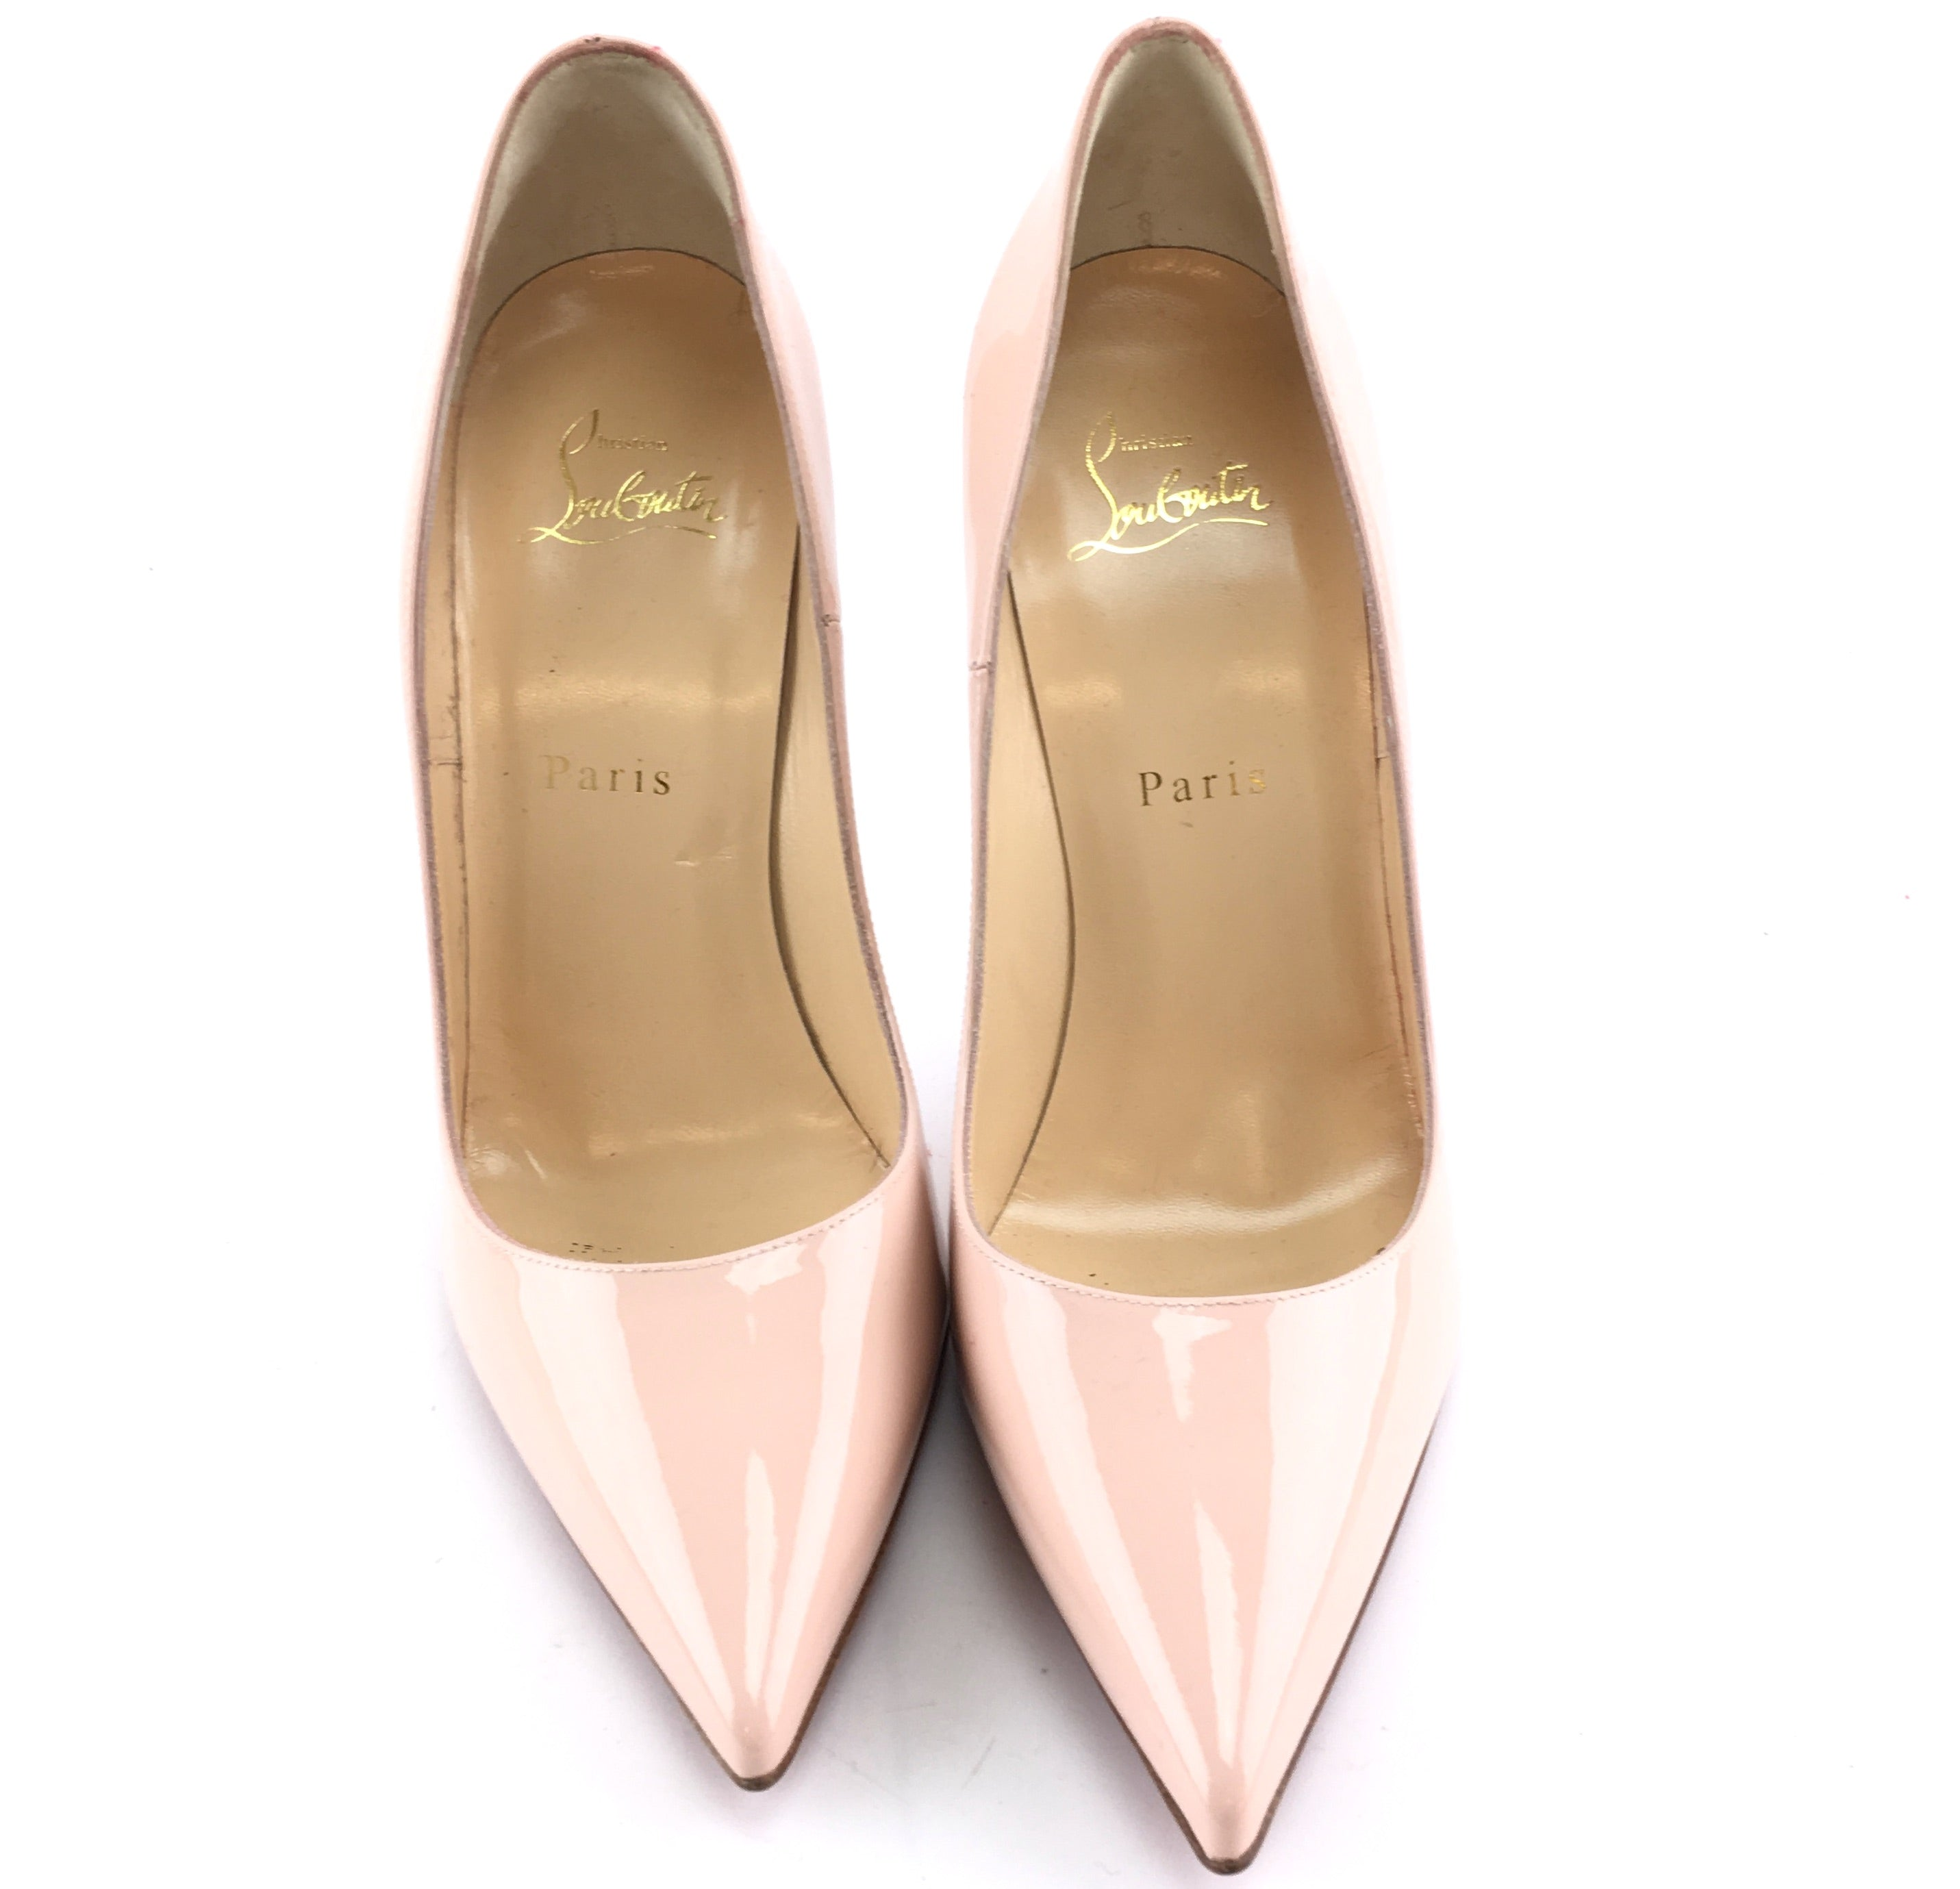 Christian Louboutin Beige So Kate 120 Patent Pigalle Follies Patent Leather Pumps